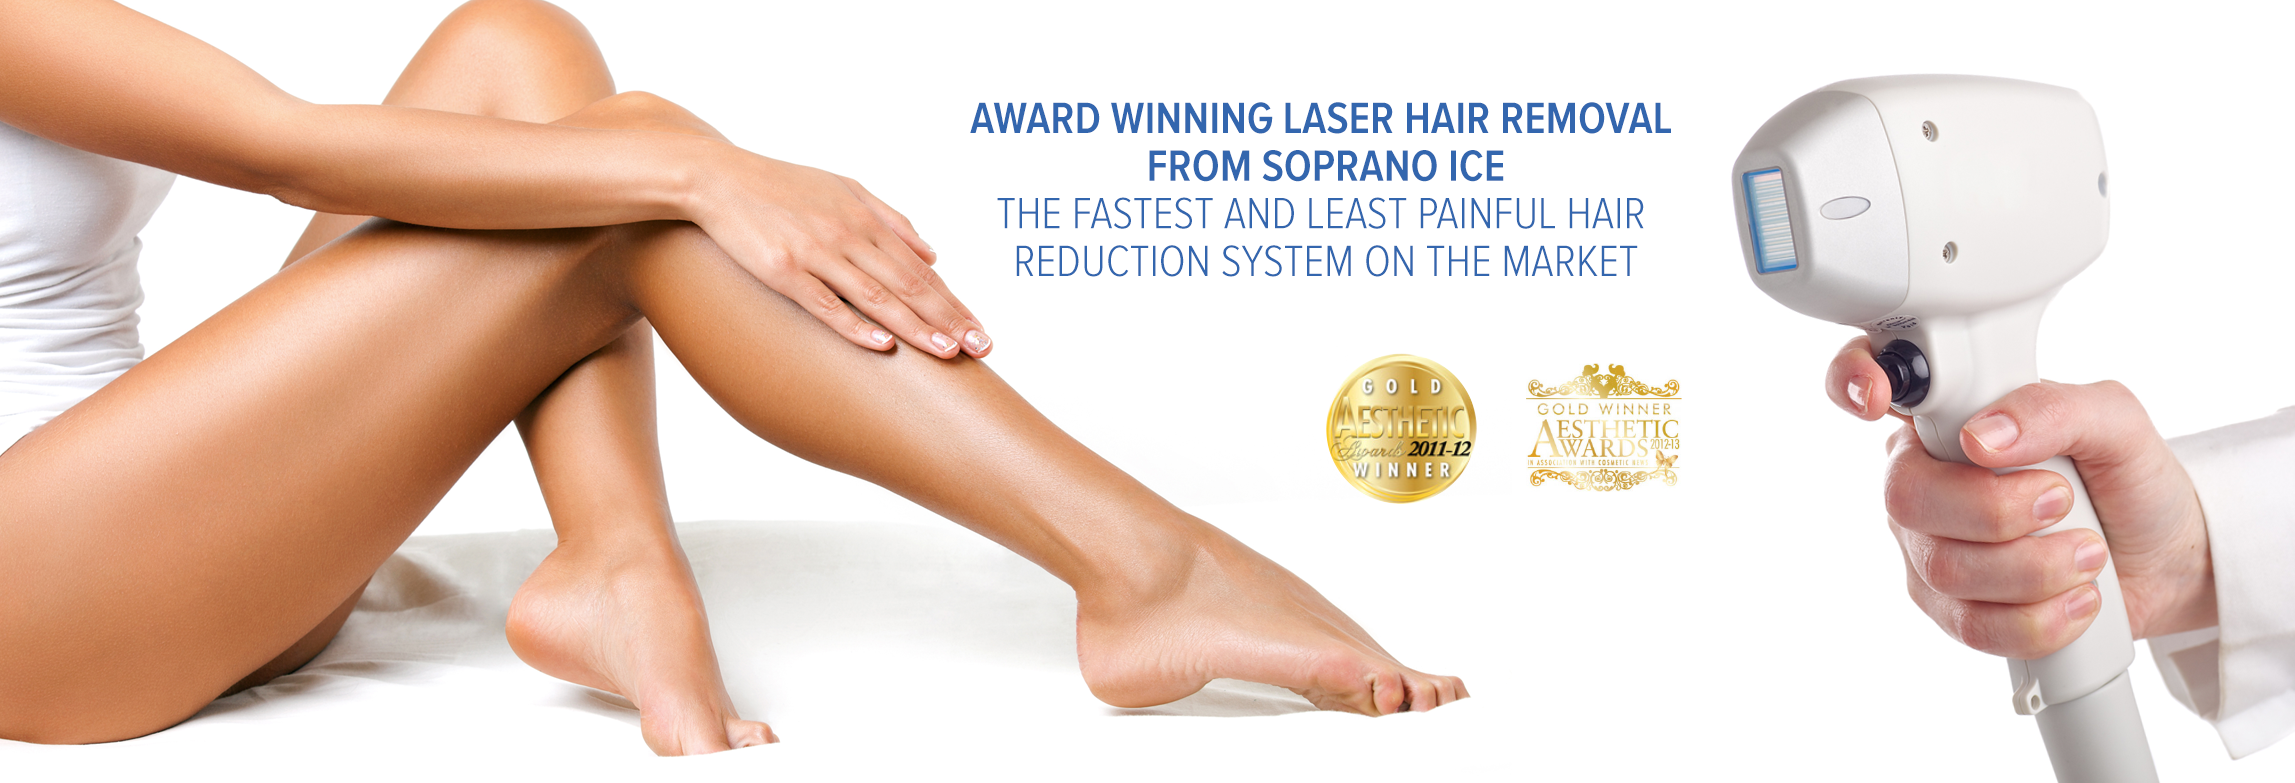 Ormond Beach Laser Hair Removal - Laser Hair Treatment ...